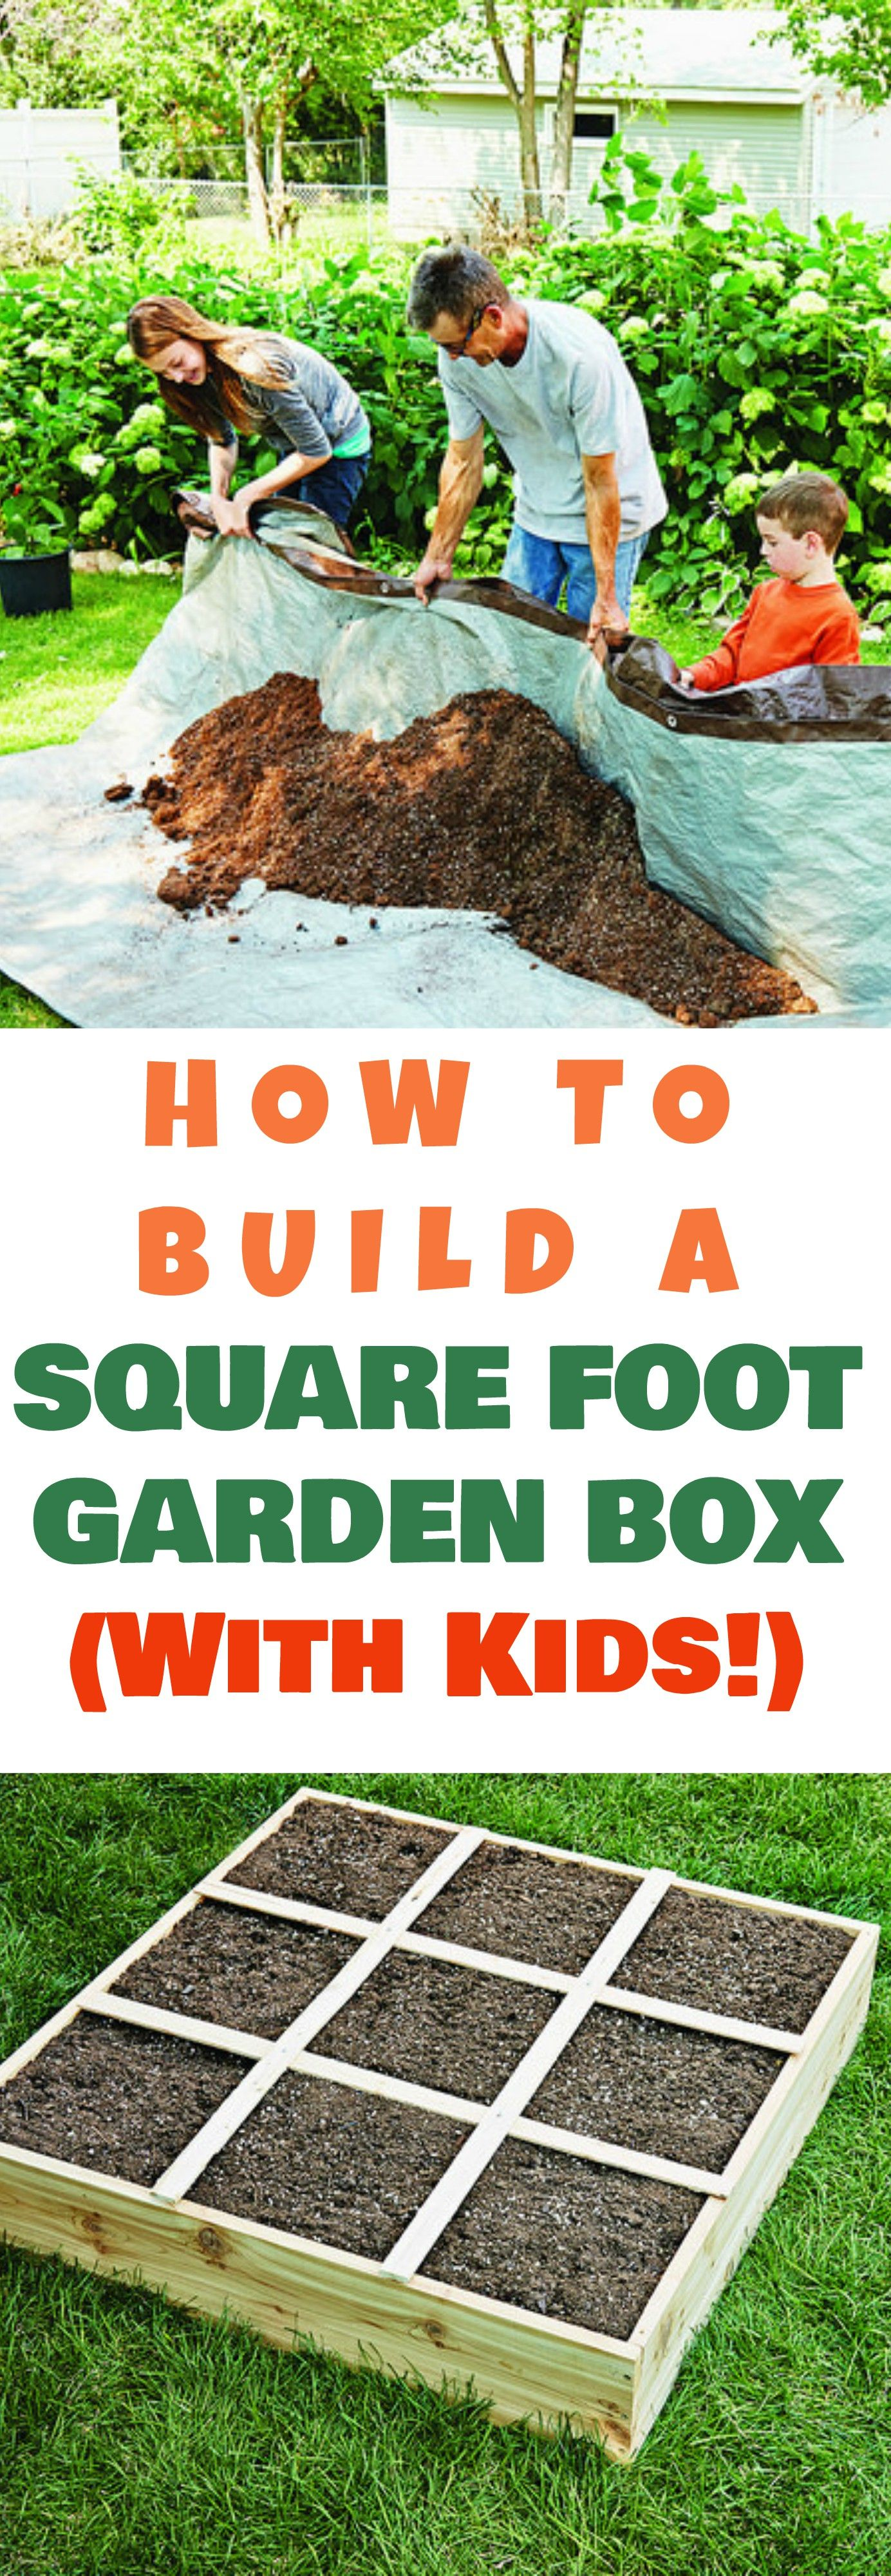 How To Build A Square Foot Garden Box